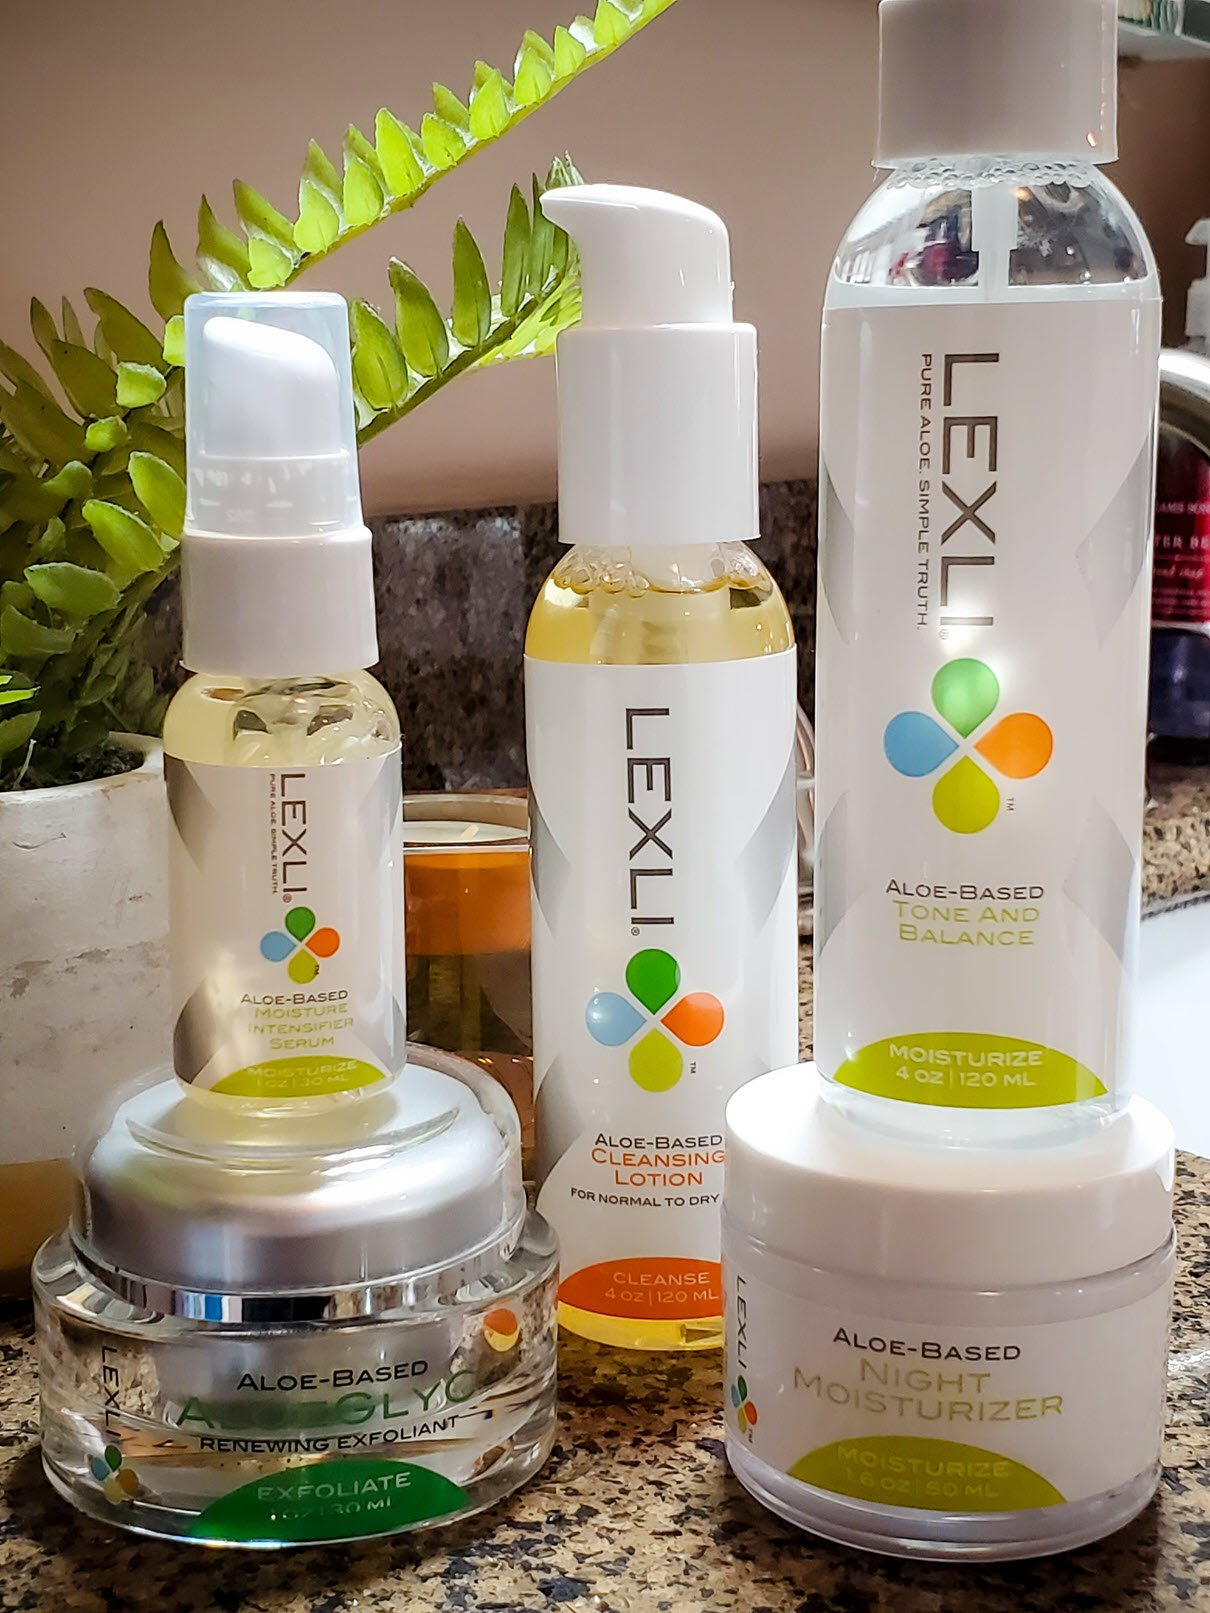 Lexli Skin Care Kit for Dry Skin